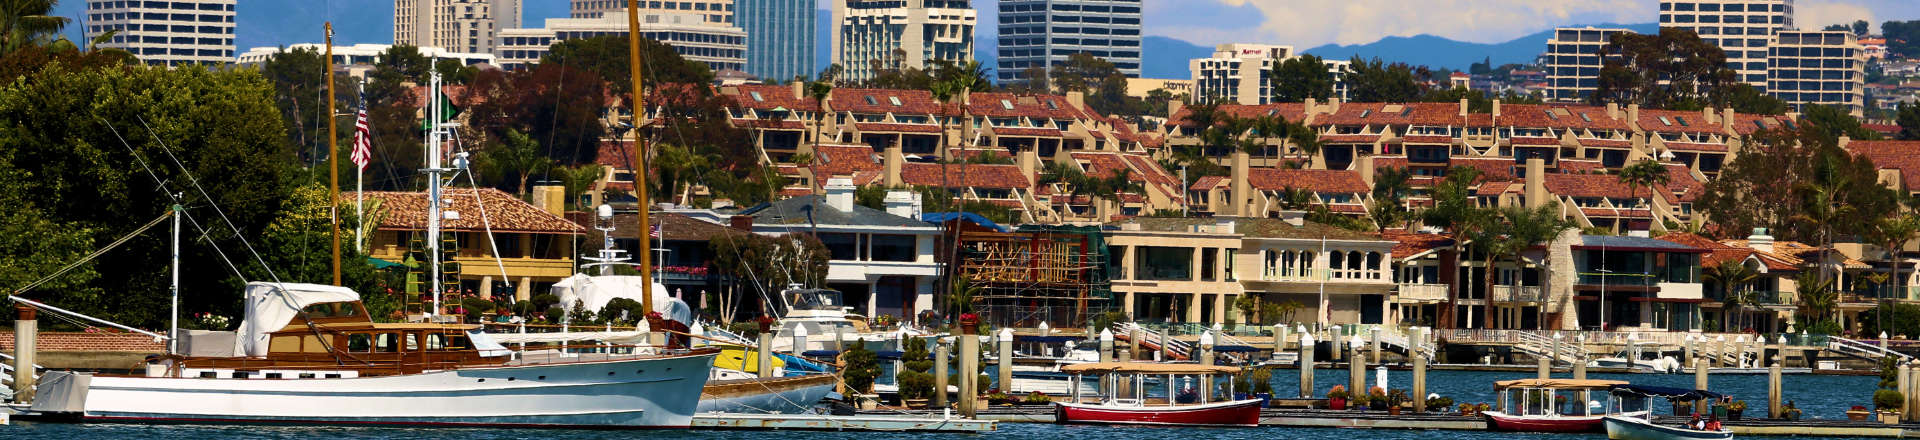 view of the marina in Orange County